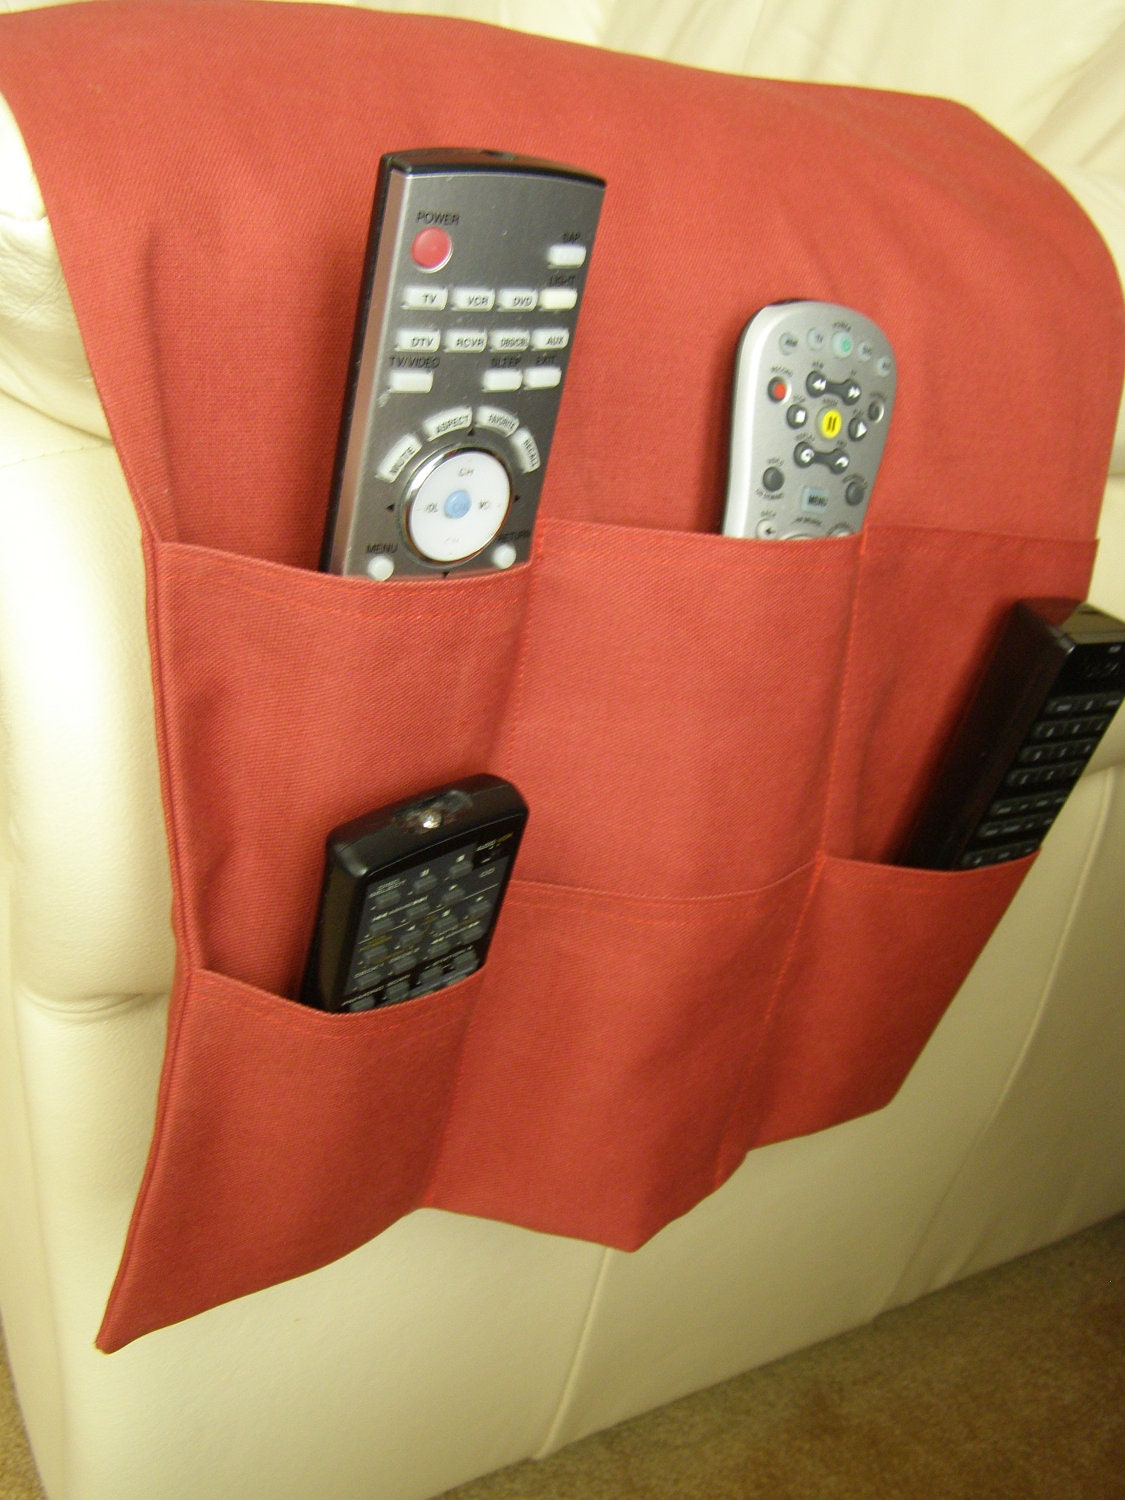 tv dvd remote control organizer caddy 6 pocket rust red. Black Bedroom Furniture Sets. Home Design Ideas